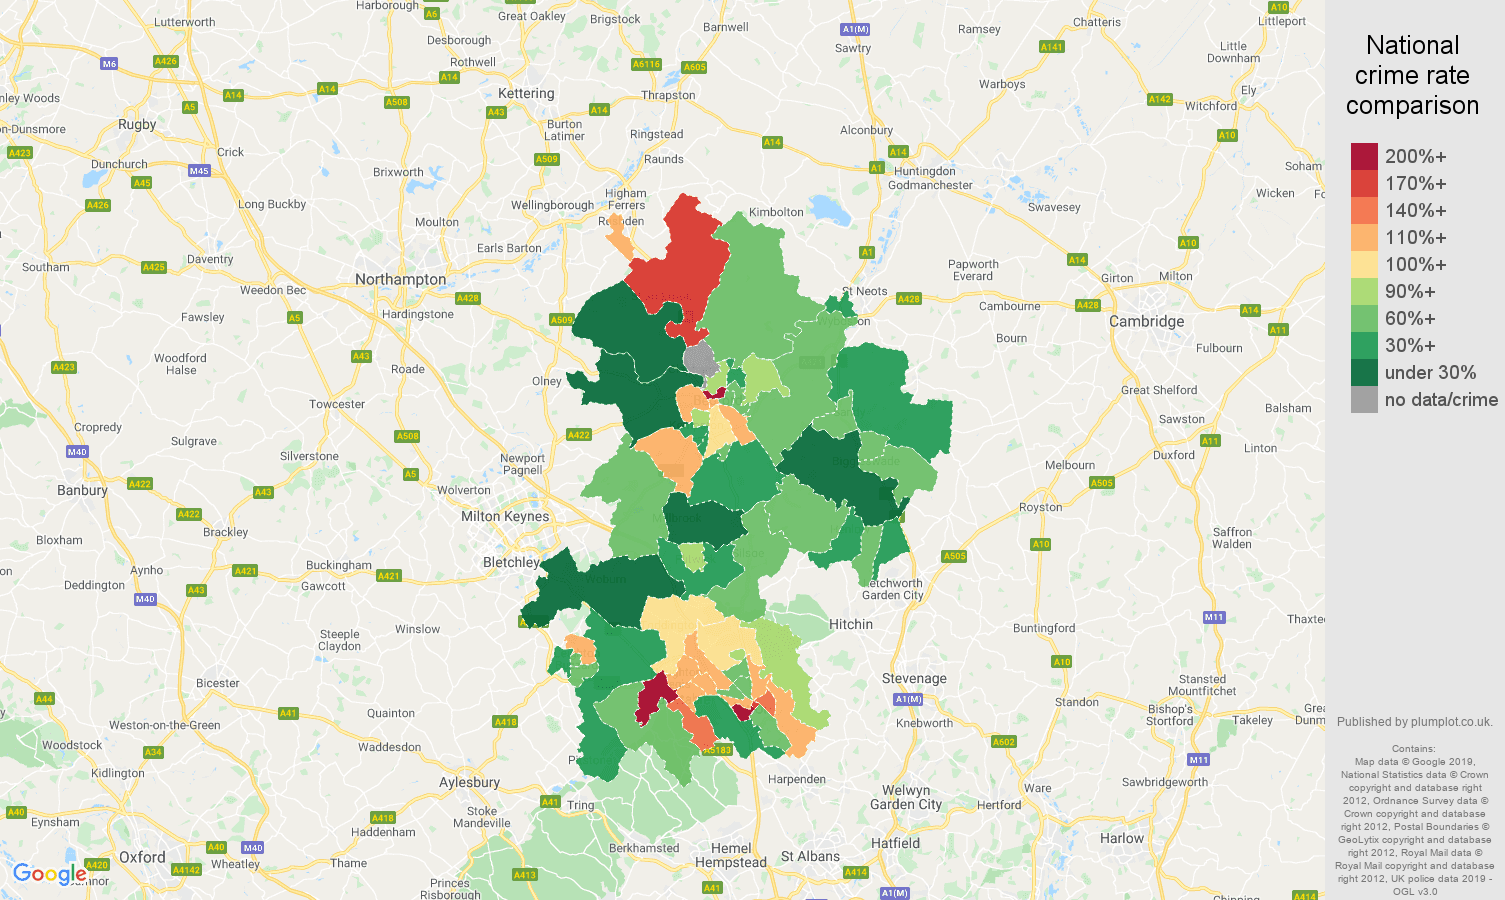 Bedfordshire other crime rate comparison map